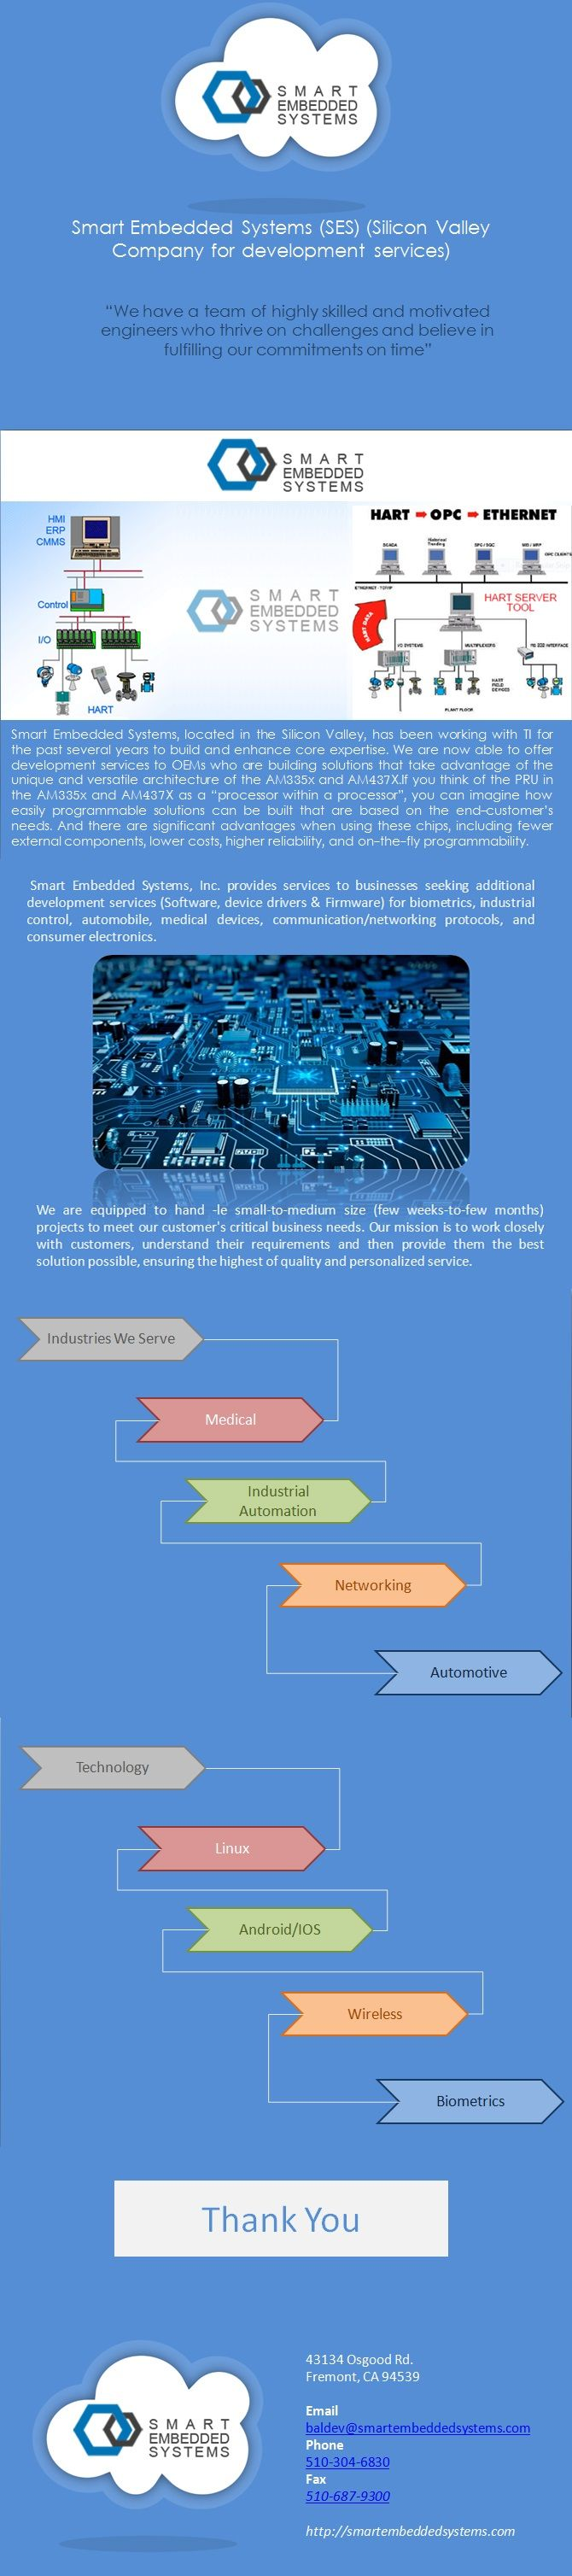 Smart Embedded Systems, Inc., based in Silicon Valley USA, is the first one in the world to offer SOFT HART™; patented and designed with a single microcontroller. HART is an industry standard protocol used in industrial automation. We also offer our services to customize the solution needed for HART devices and controllers.